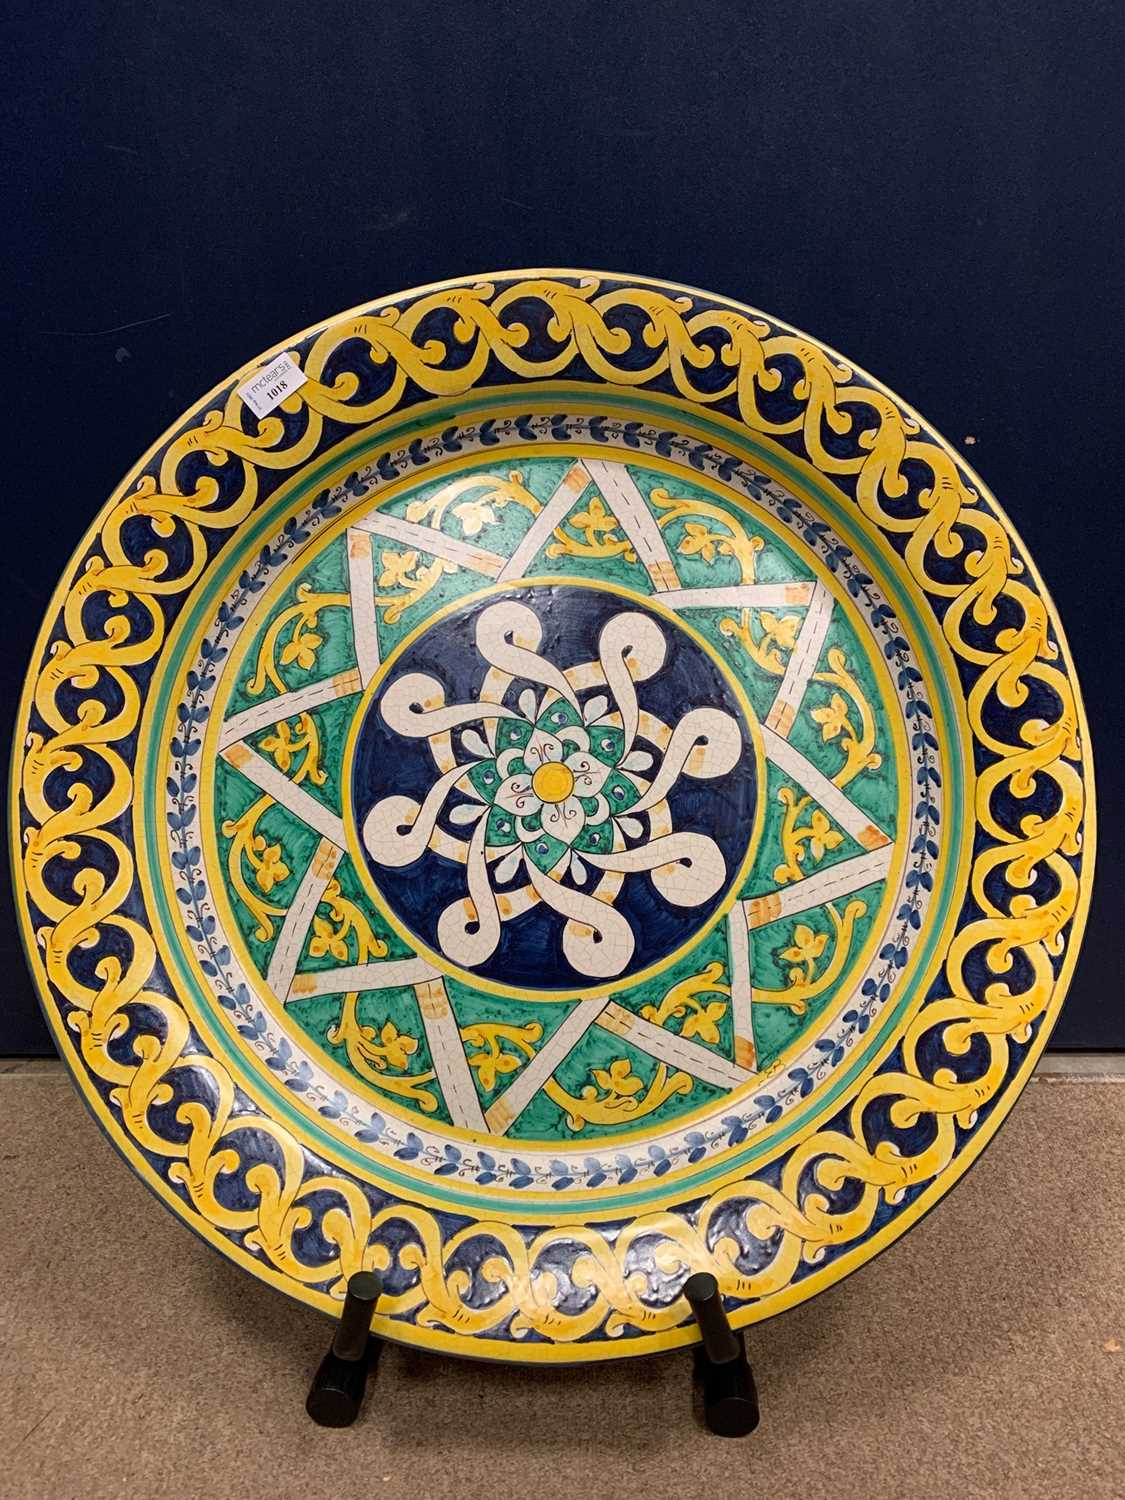 Lot 1018 - A 20TH CENTURY CONTINENTAL MAJOLICA CHARGER